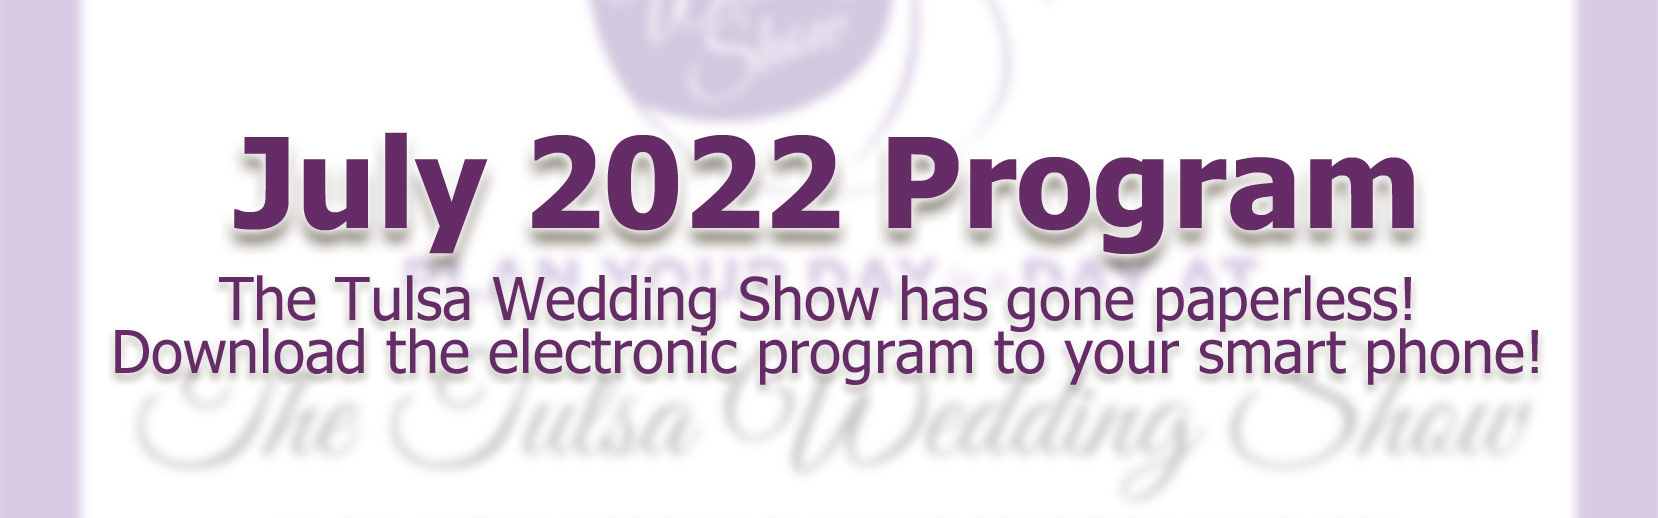 Download the new paperless program to The Tulsa Wedding Show!